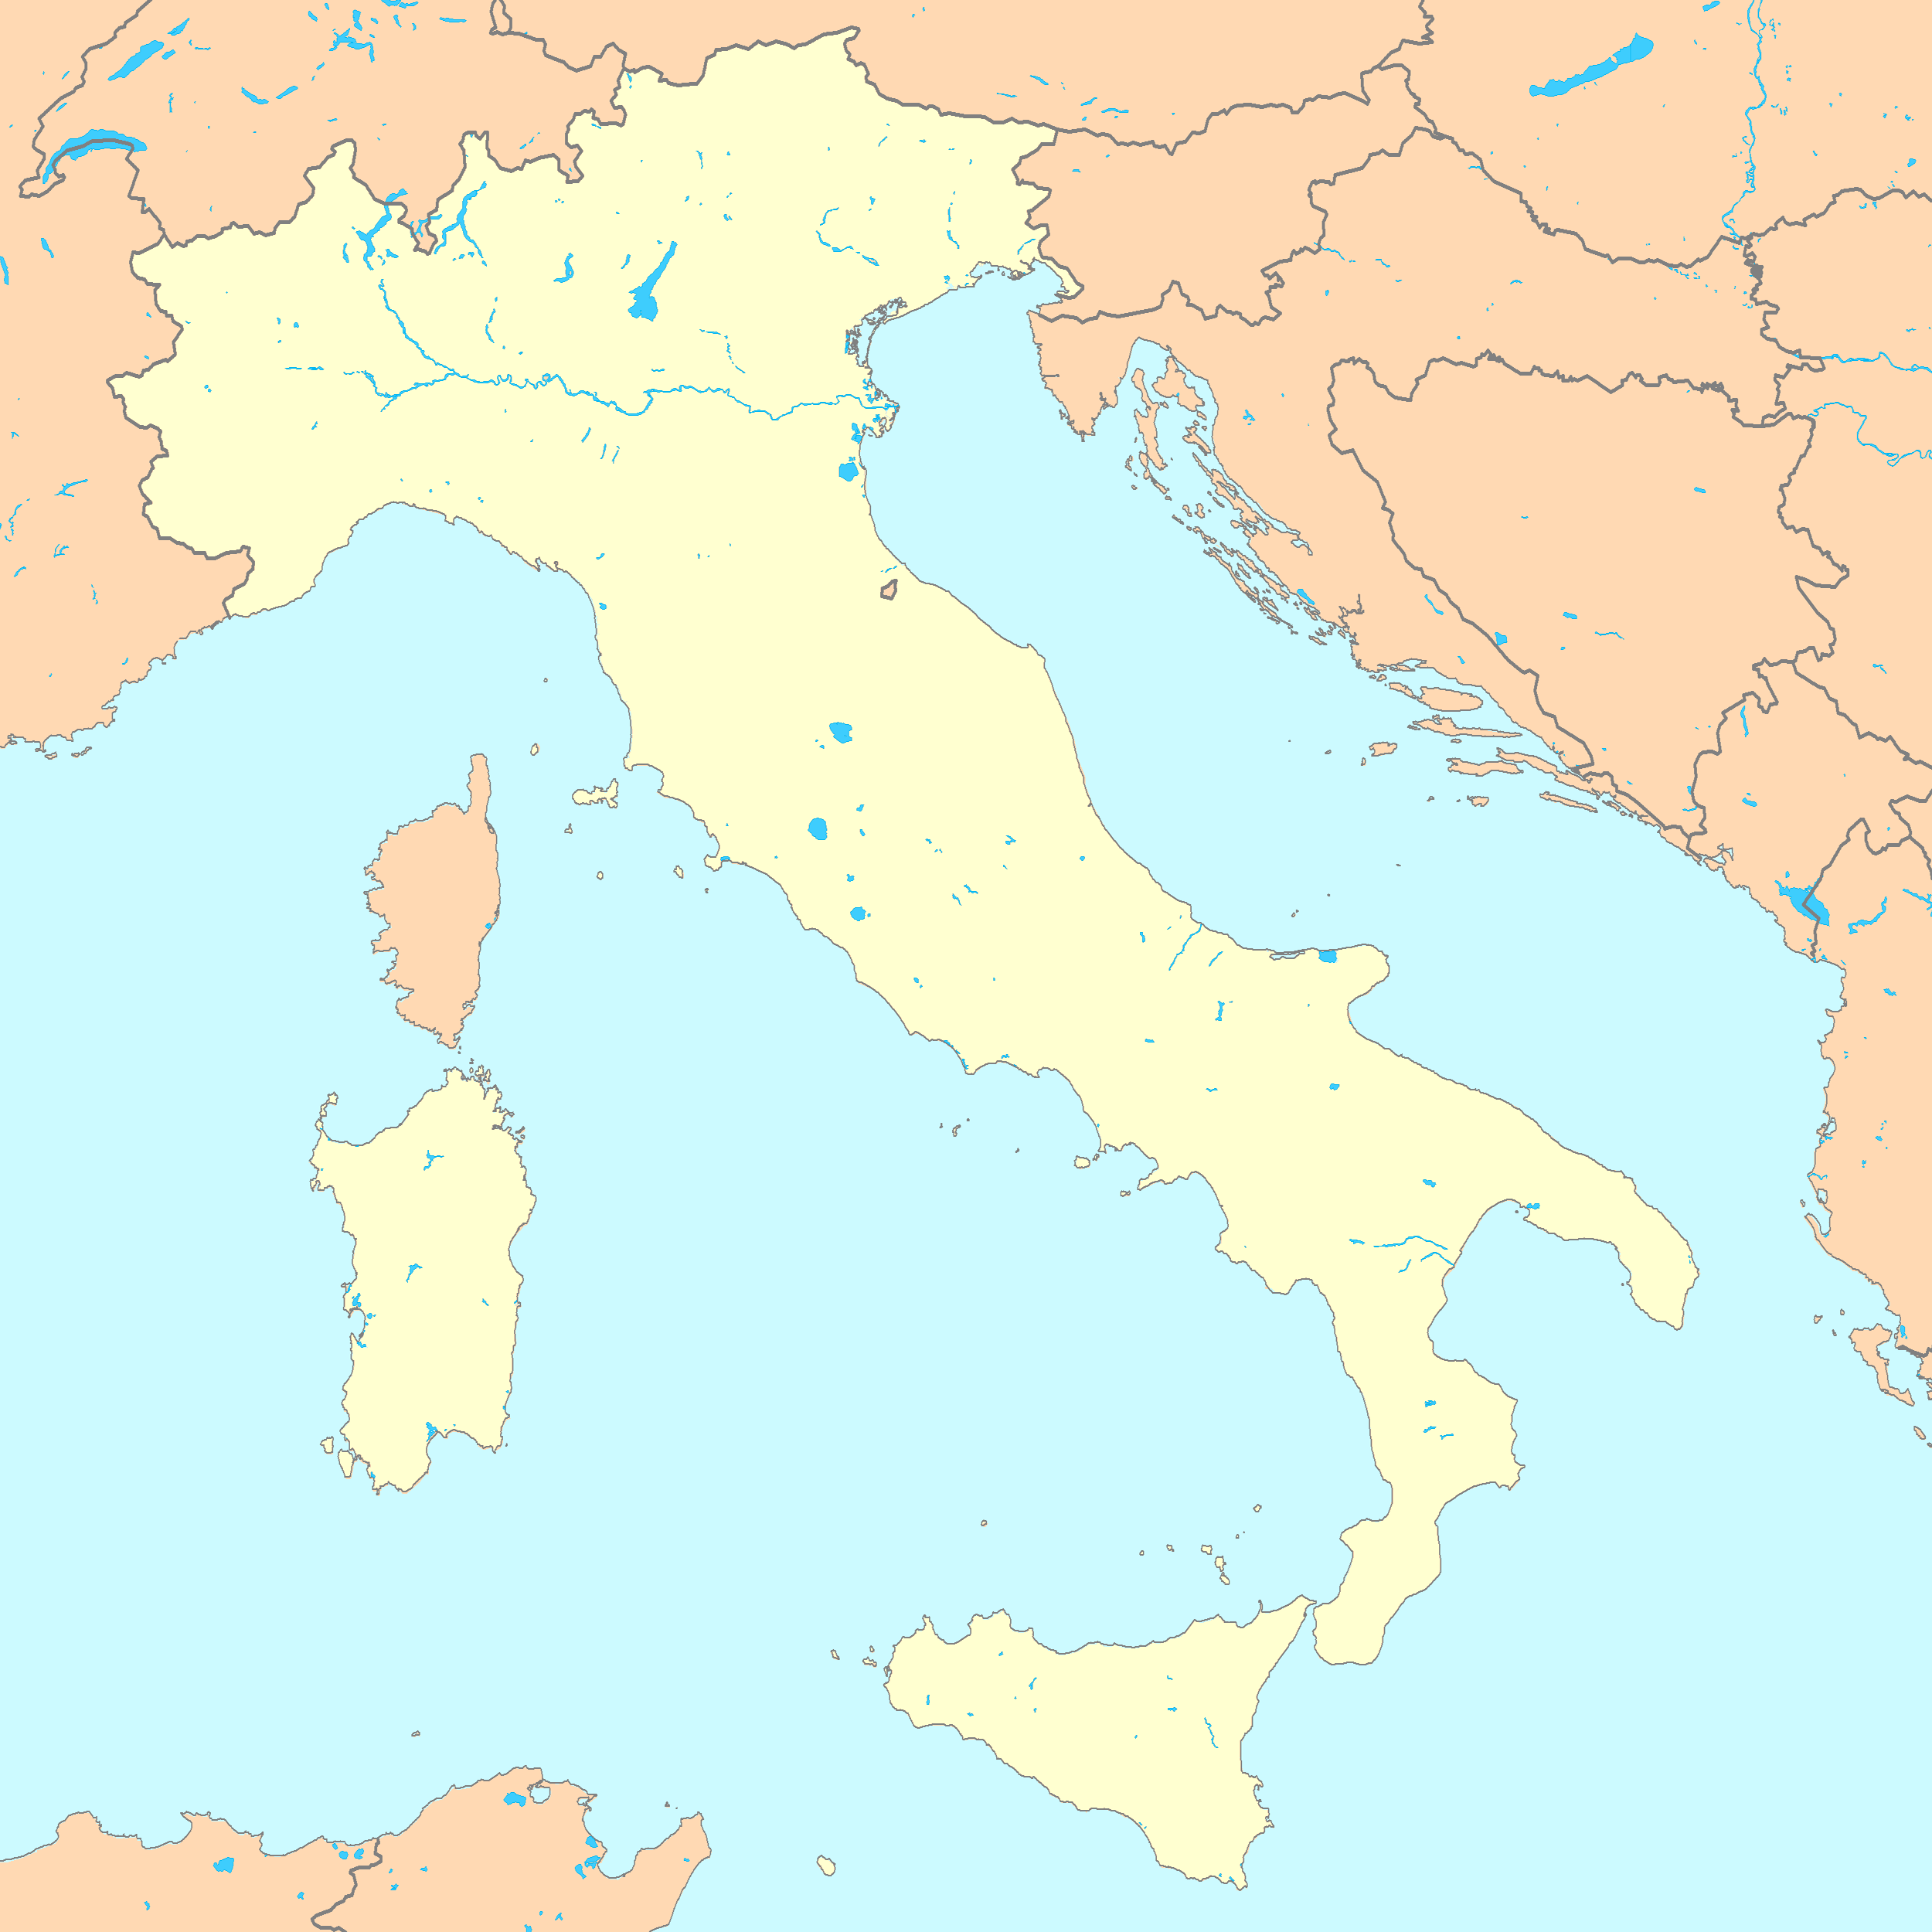 FileItaly Map Blankpng Wikimedia Commons - Italian map